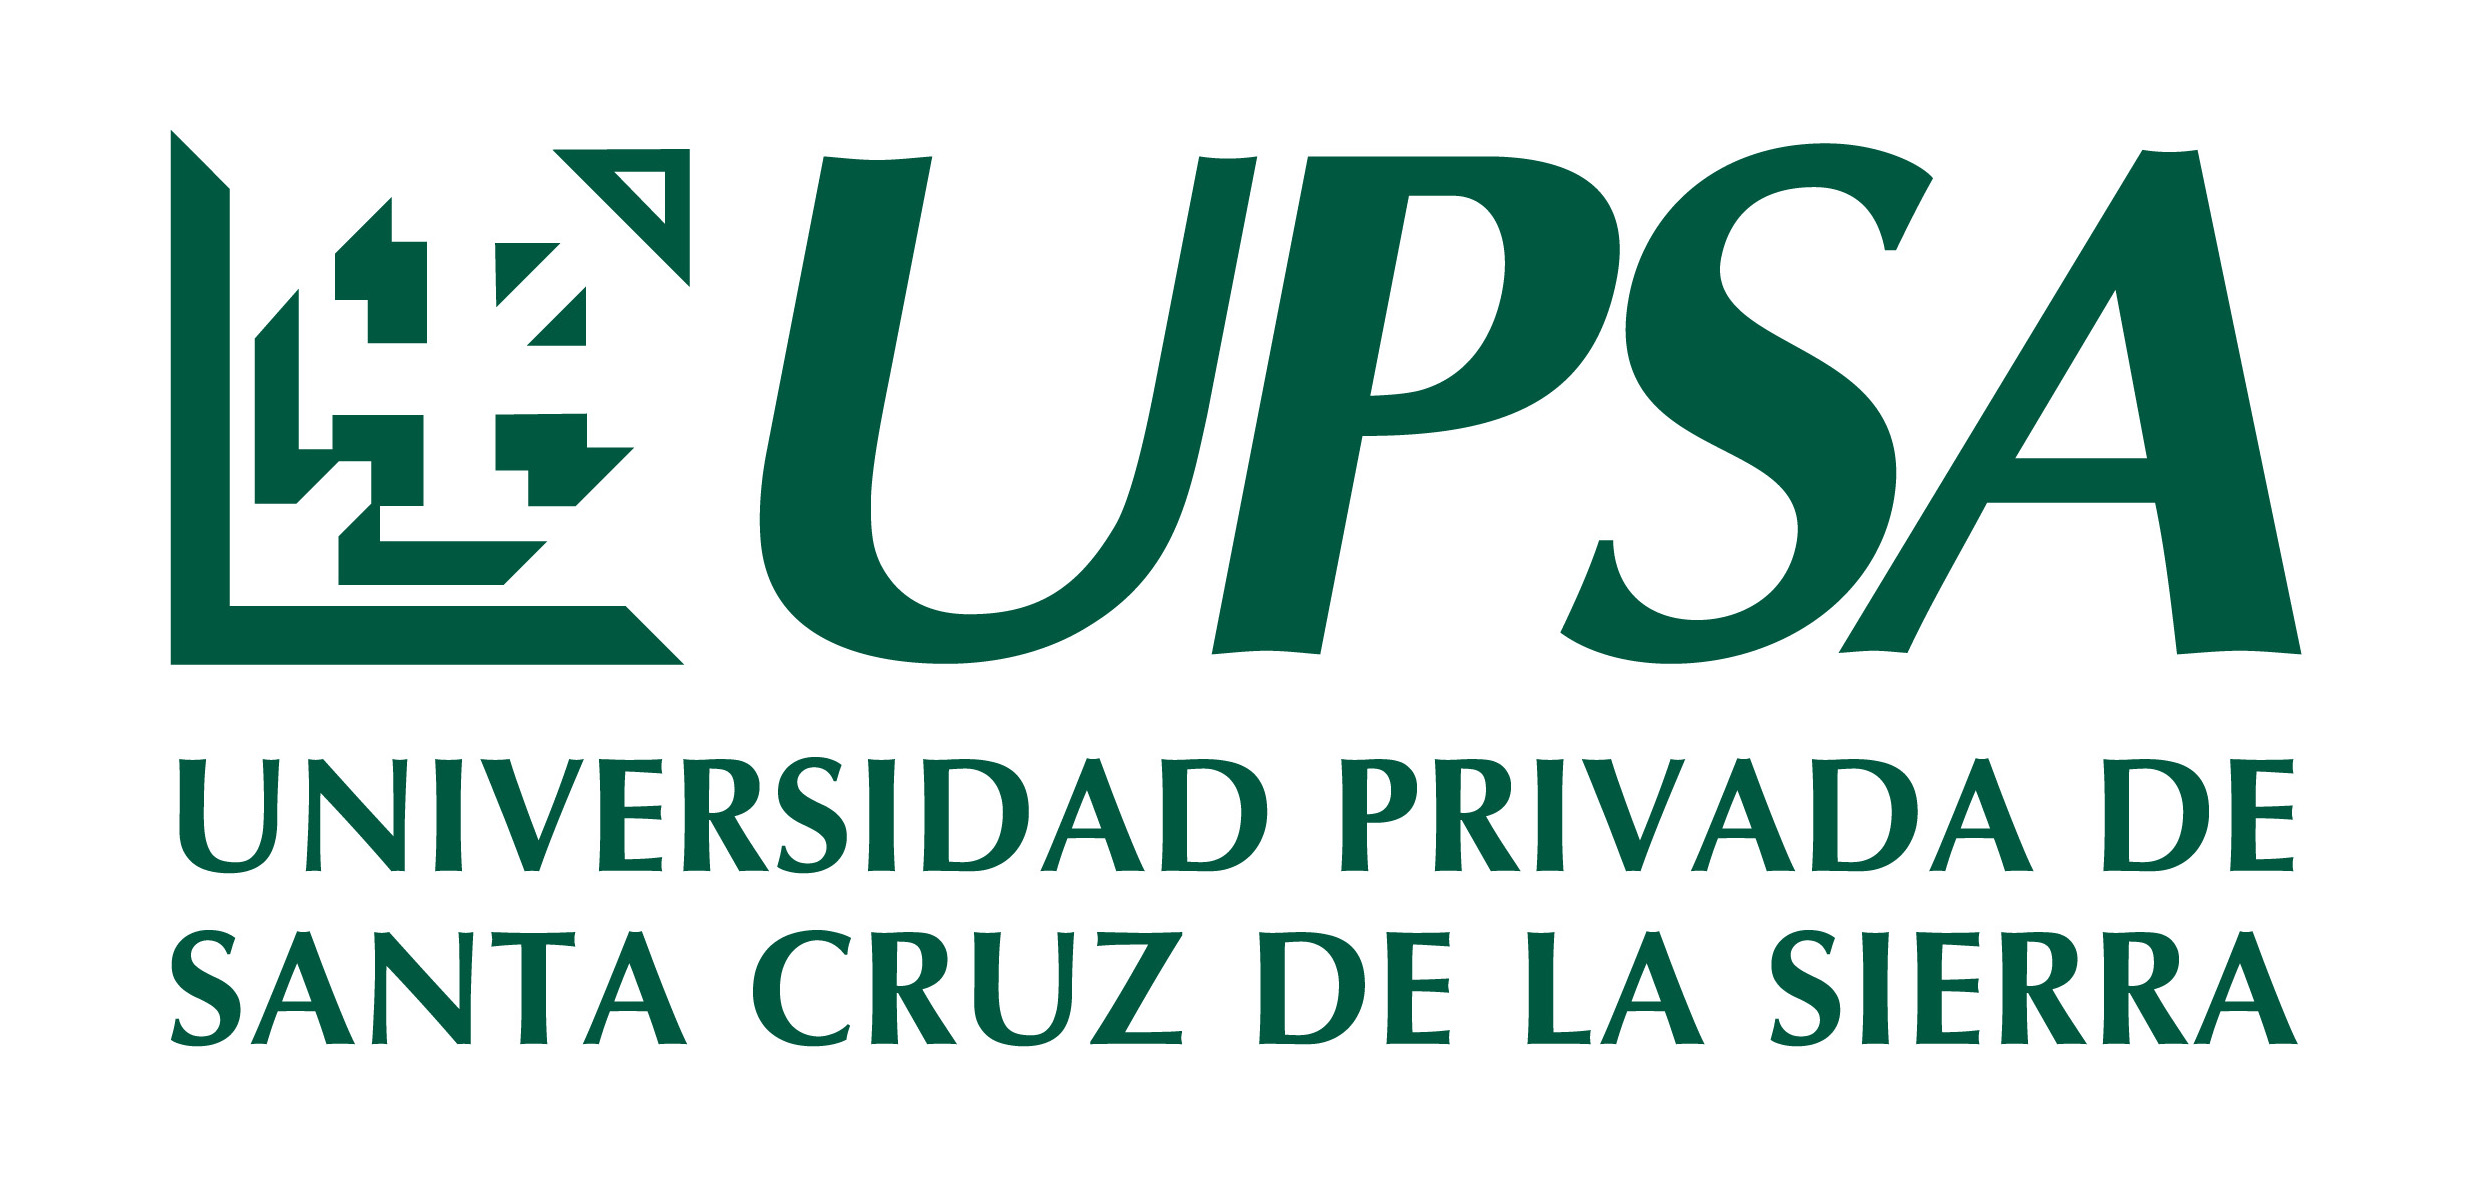 Universidad Privada de Santa Cruz de la Sierra